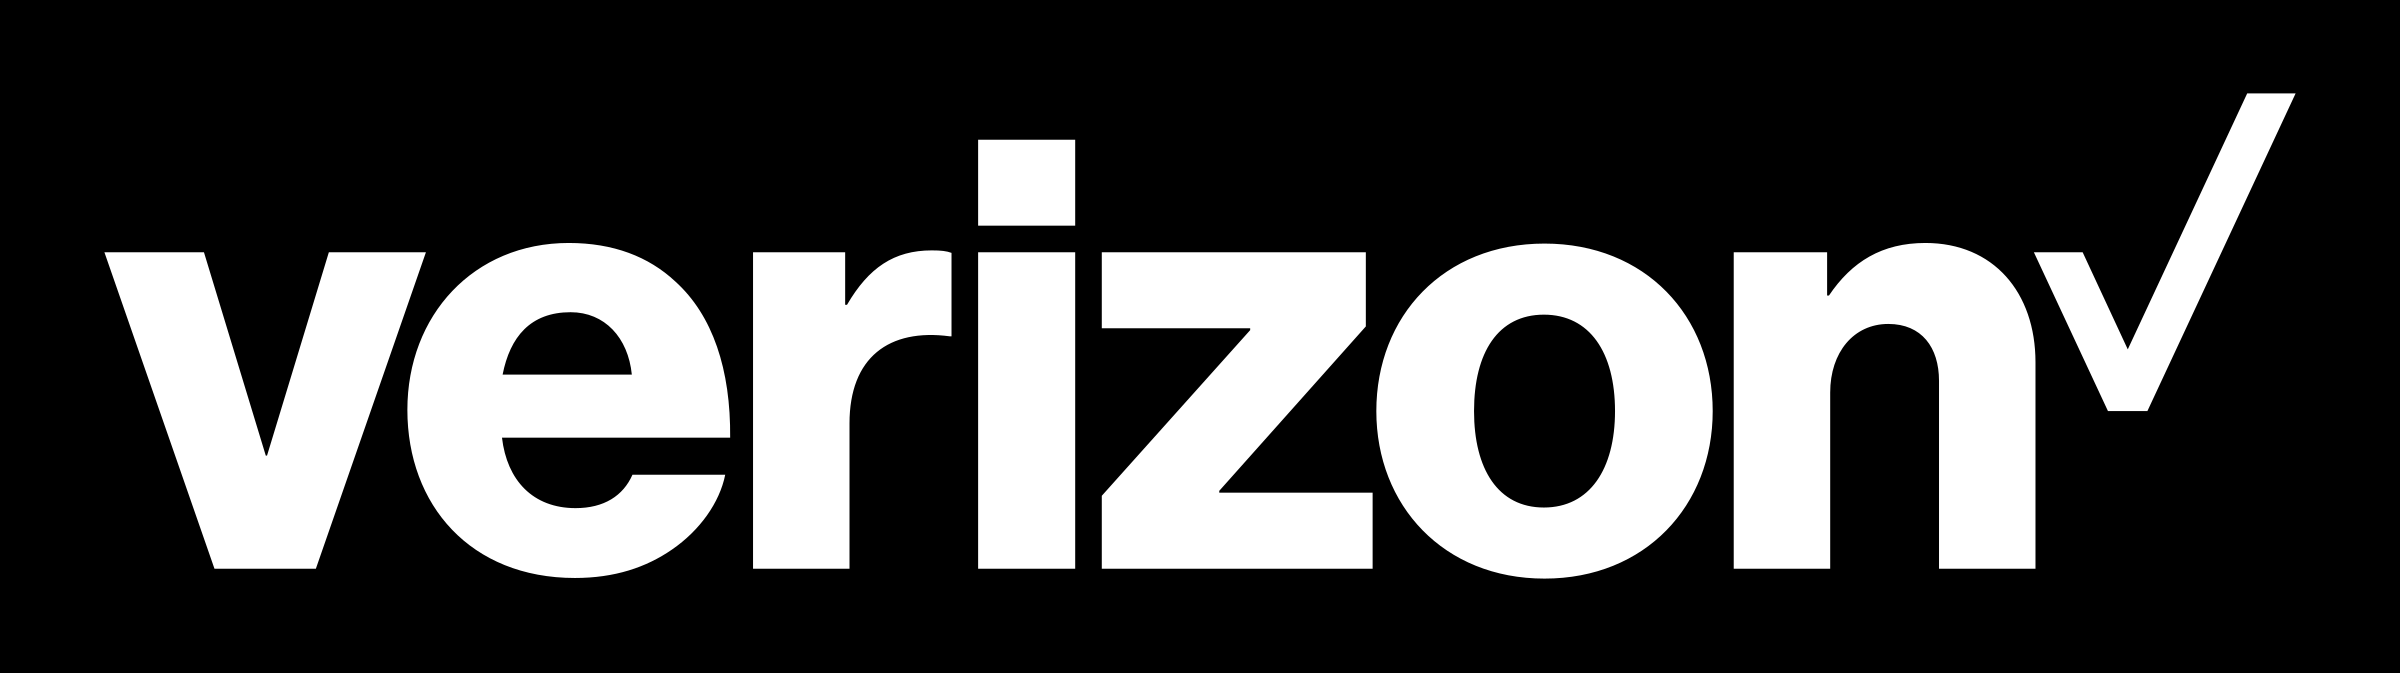 Verizon Logo - Verizon Logo PNG Transparent & SVG Vector - Freebie Supply